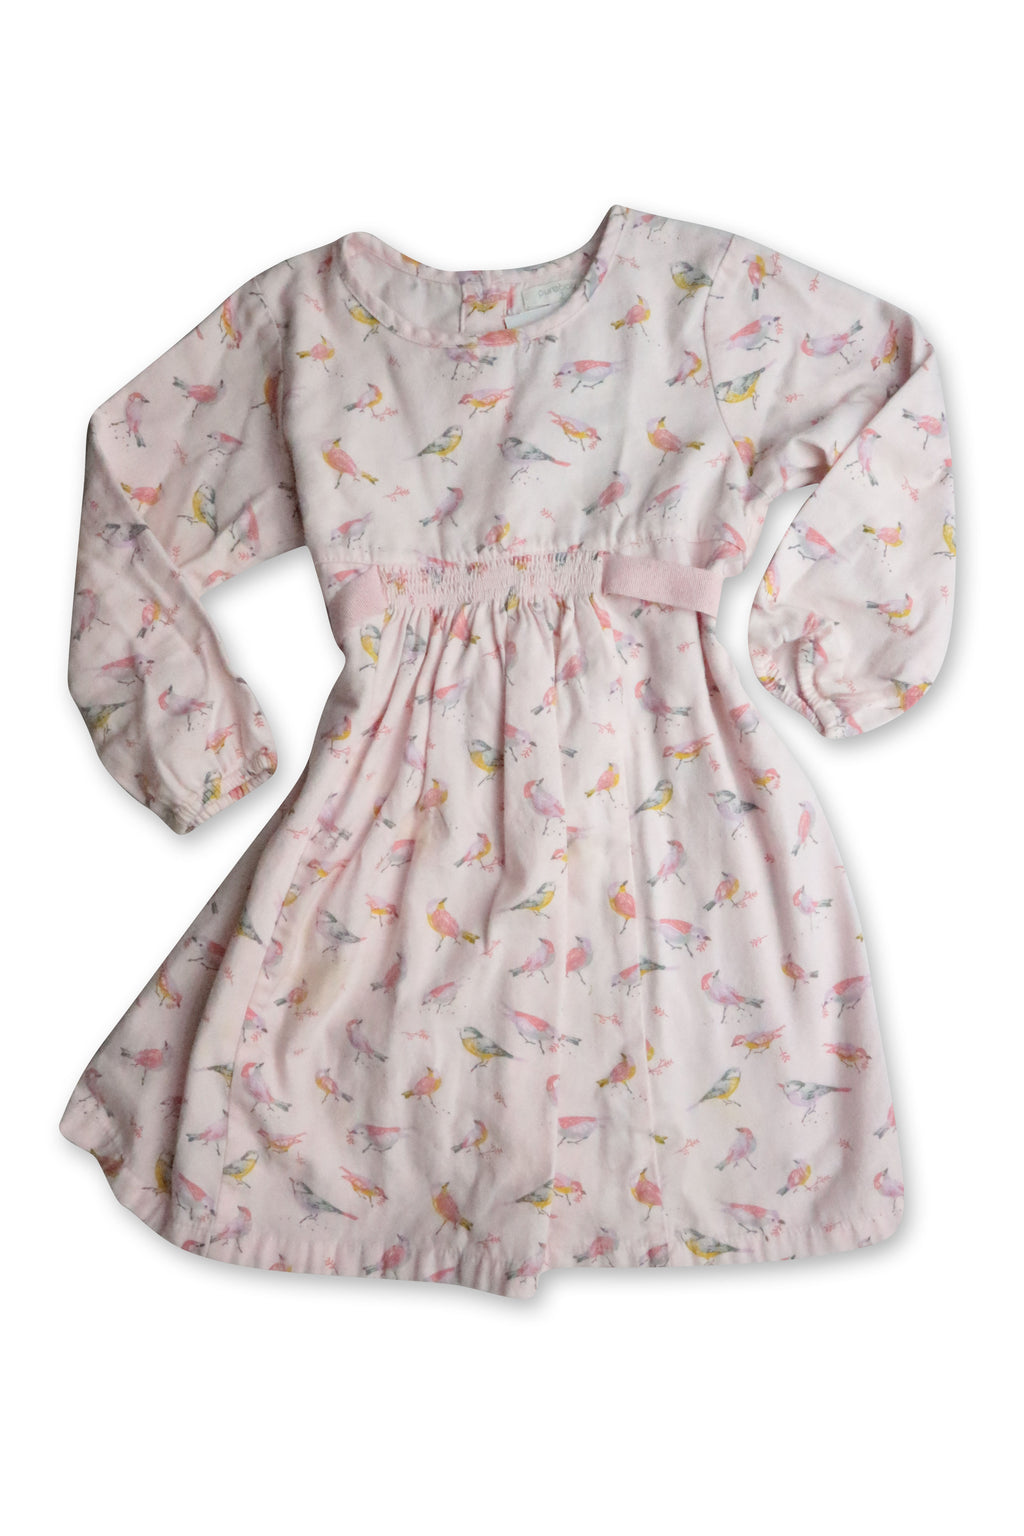 Purebaby Dress size 2